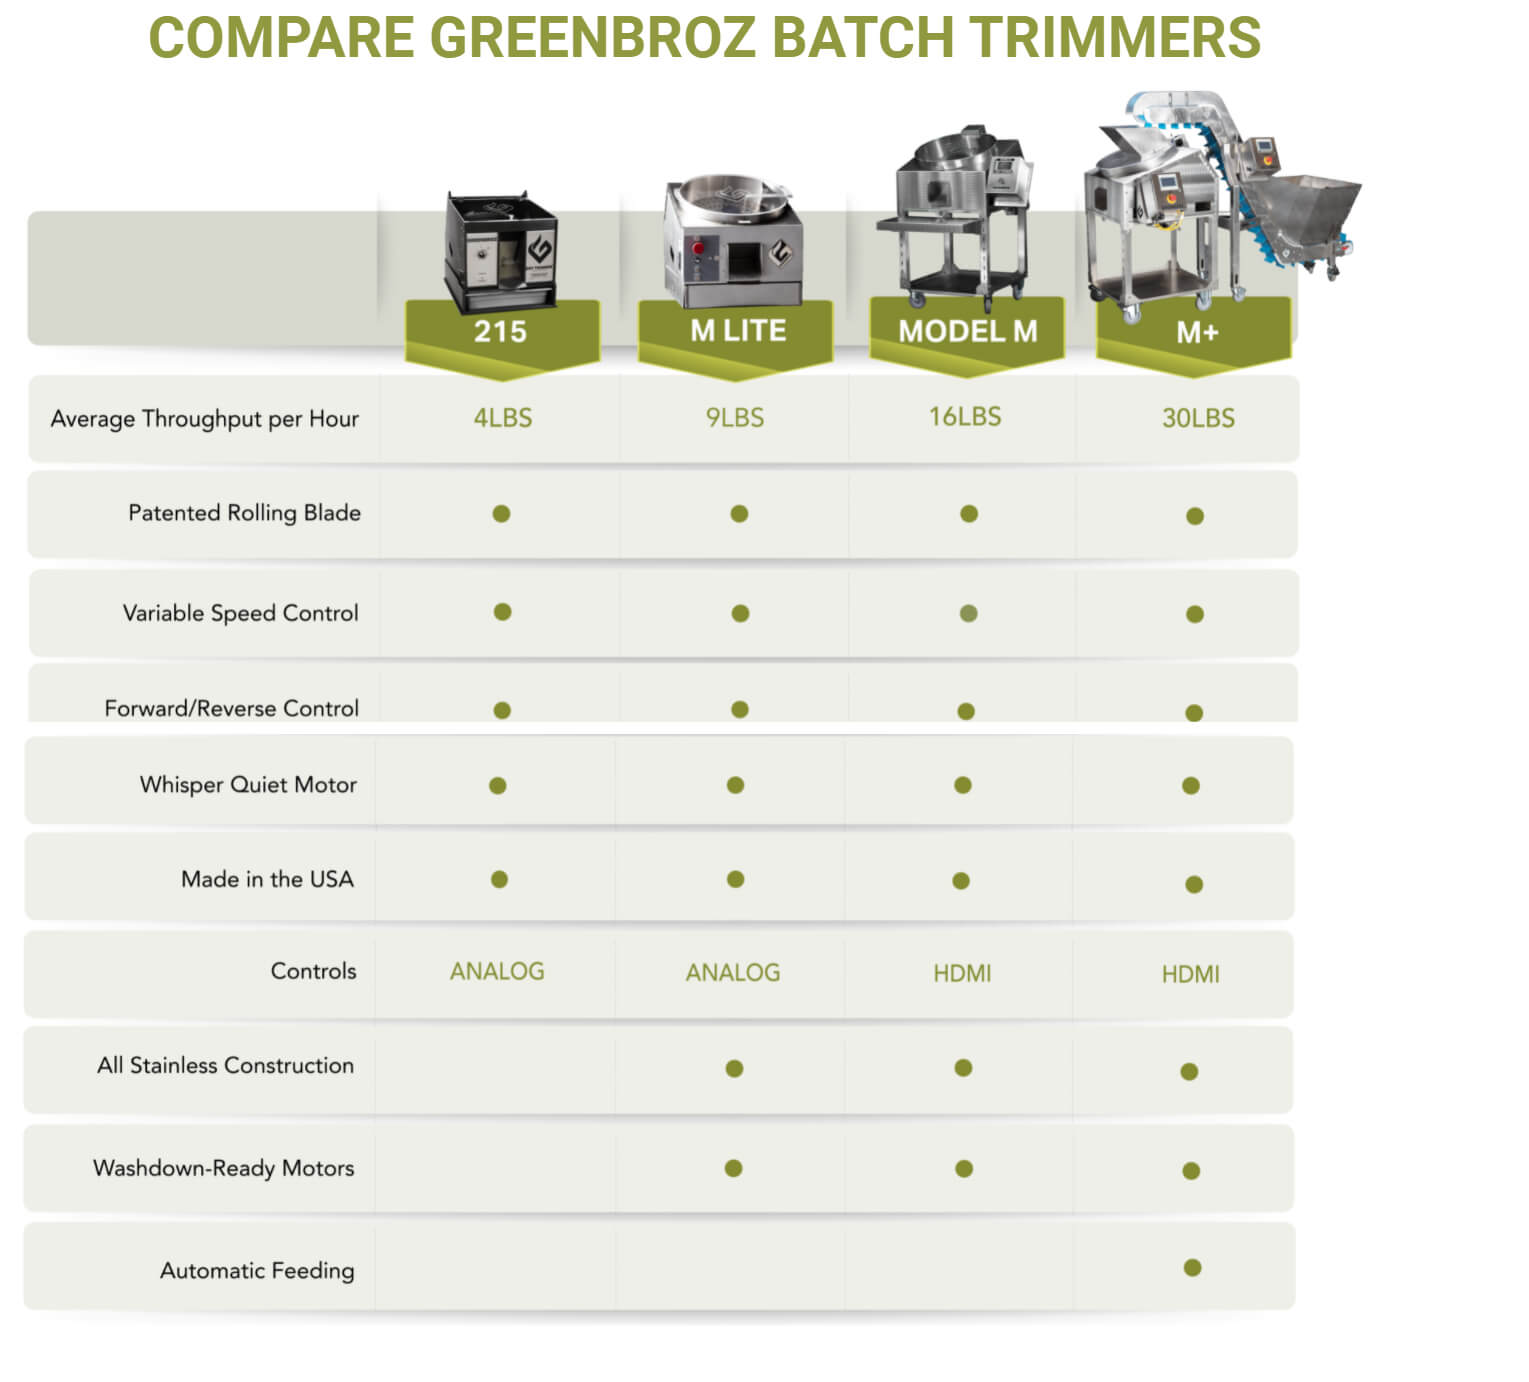 COMPARE GREENBROZ BATCH TRIMMERS